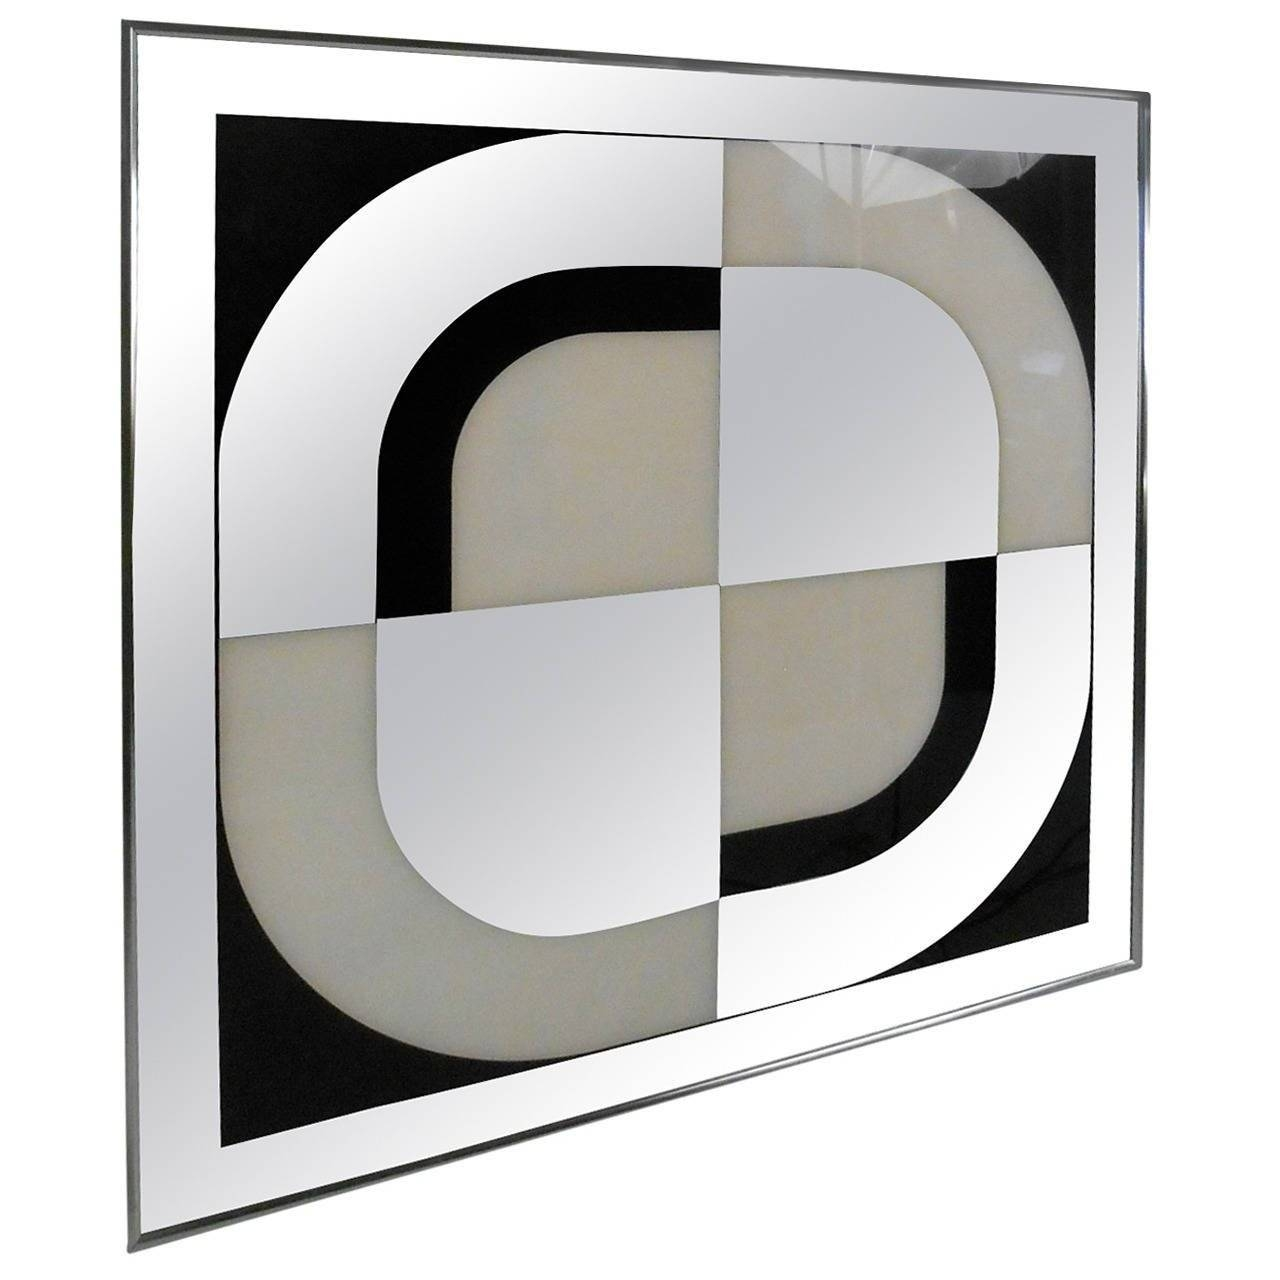 Unique Mid Century Modern Mirrored Wall Artturner Design For Within Latest Modern Mirrored Wall Art (View 20 of 20)